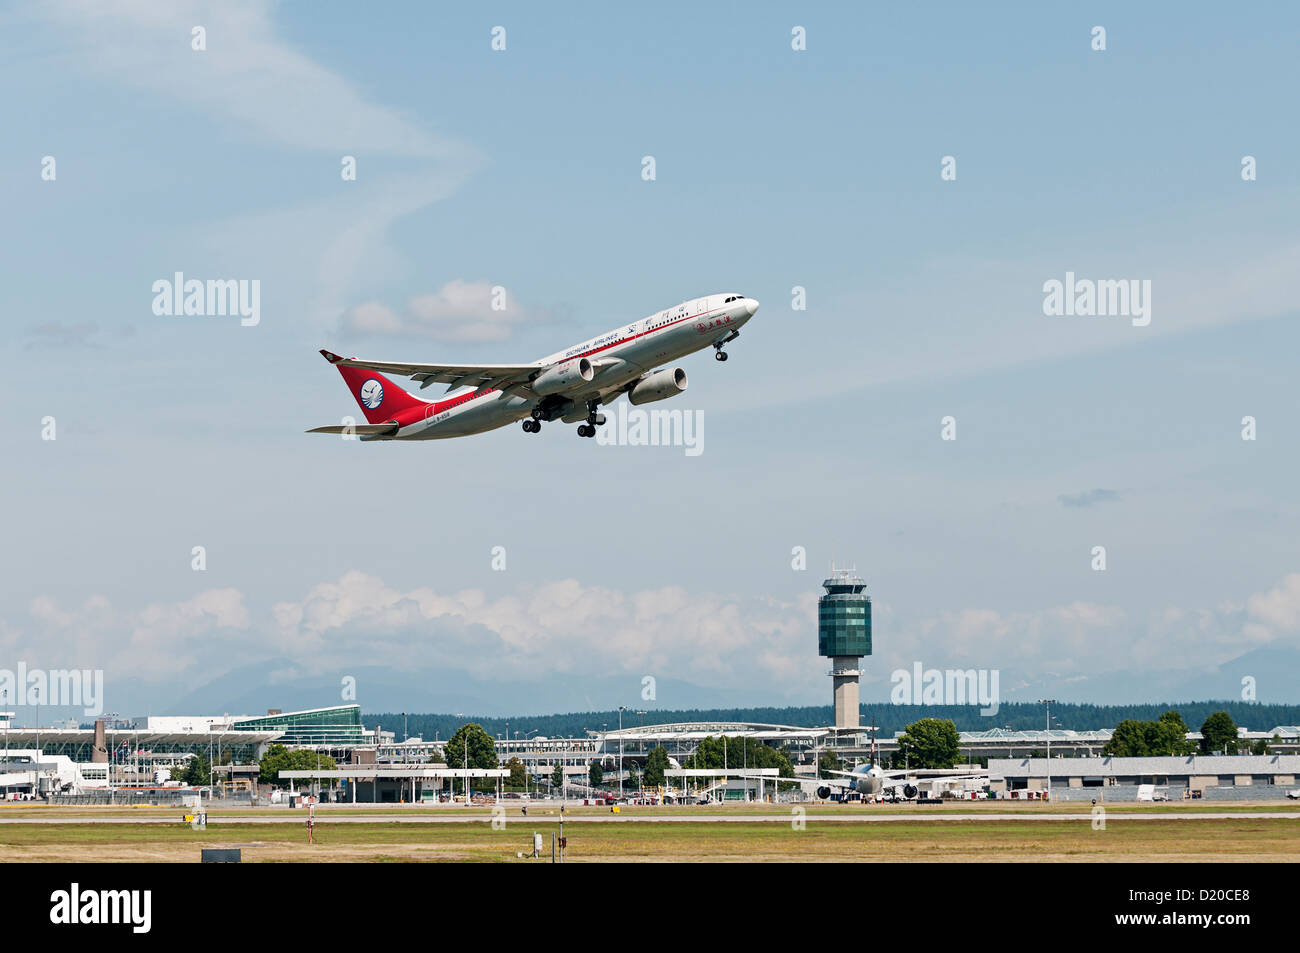 A Sichuan Airlines Airbus A330-200 jetliner departs from Vancouver International Airport - Stock Image